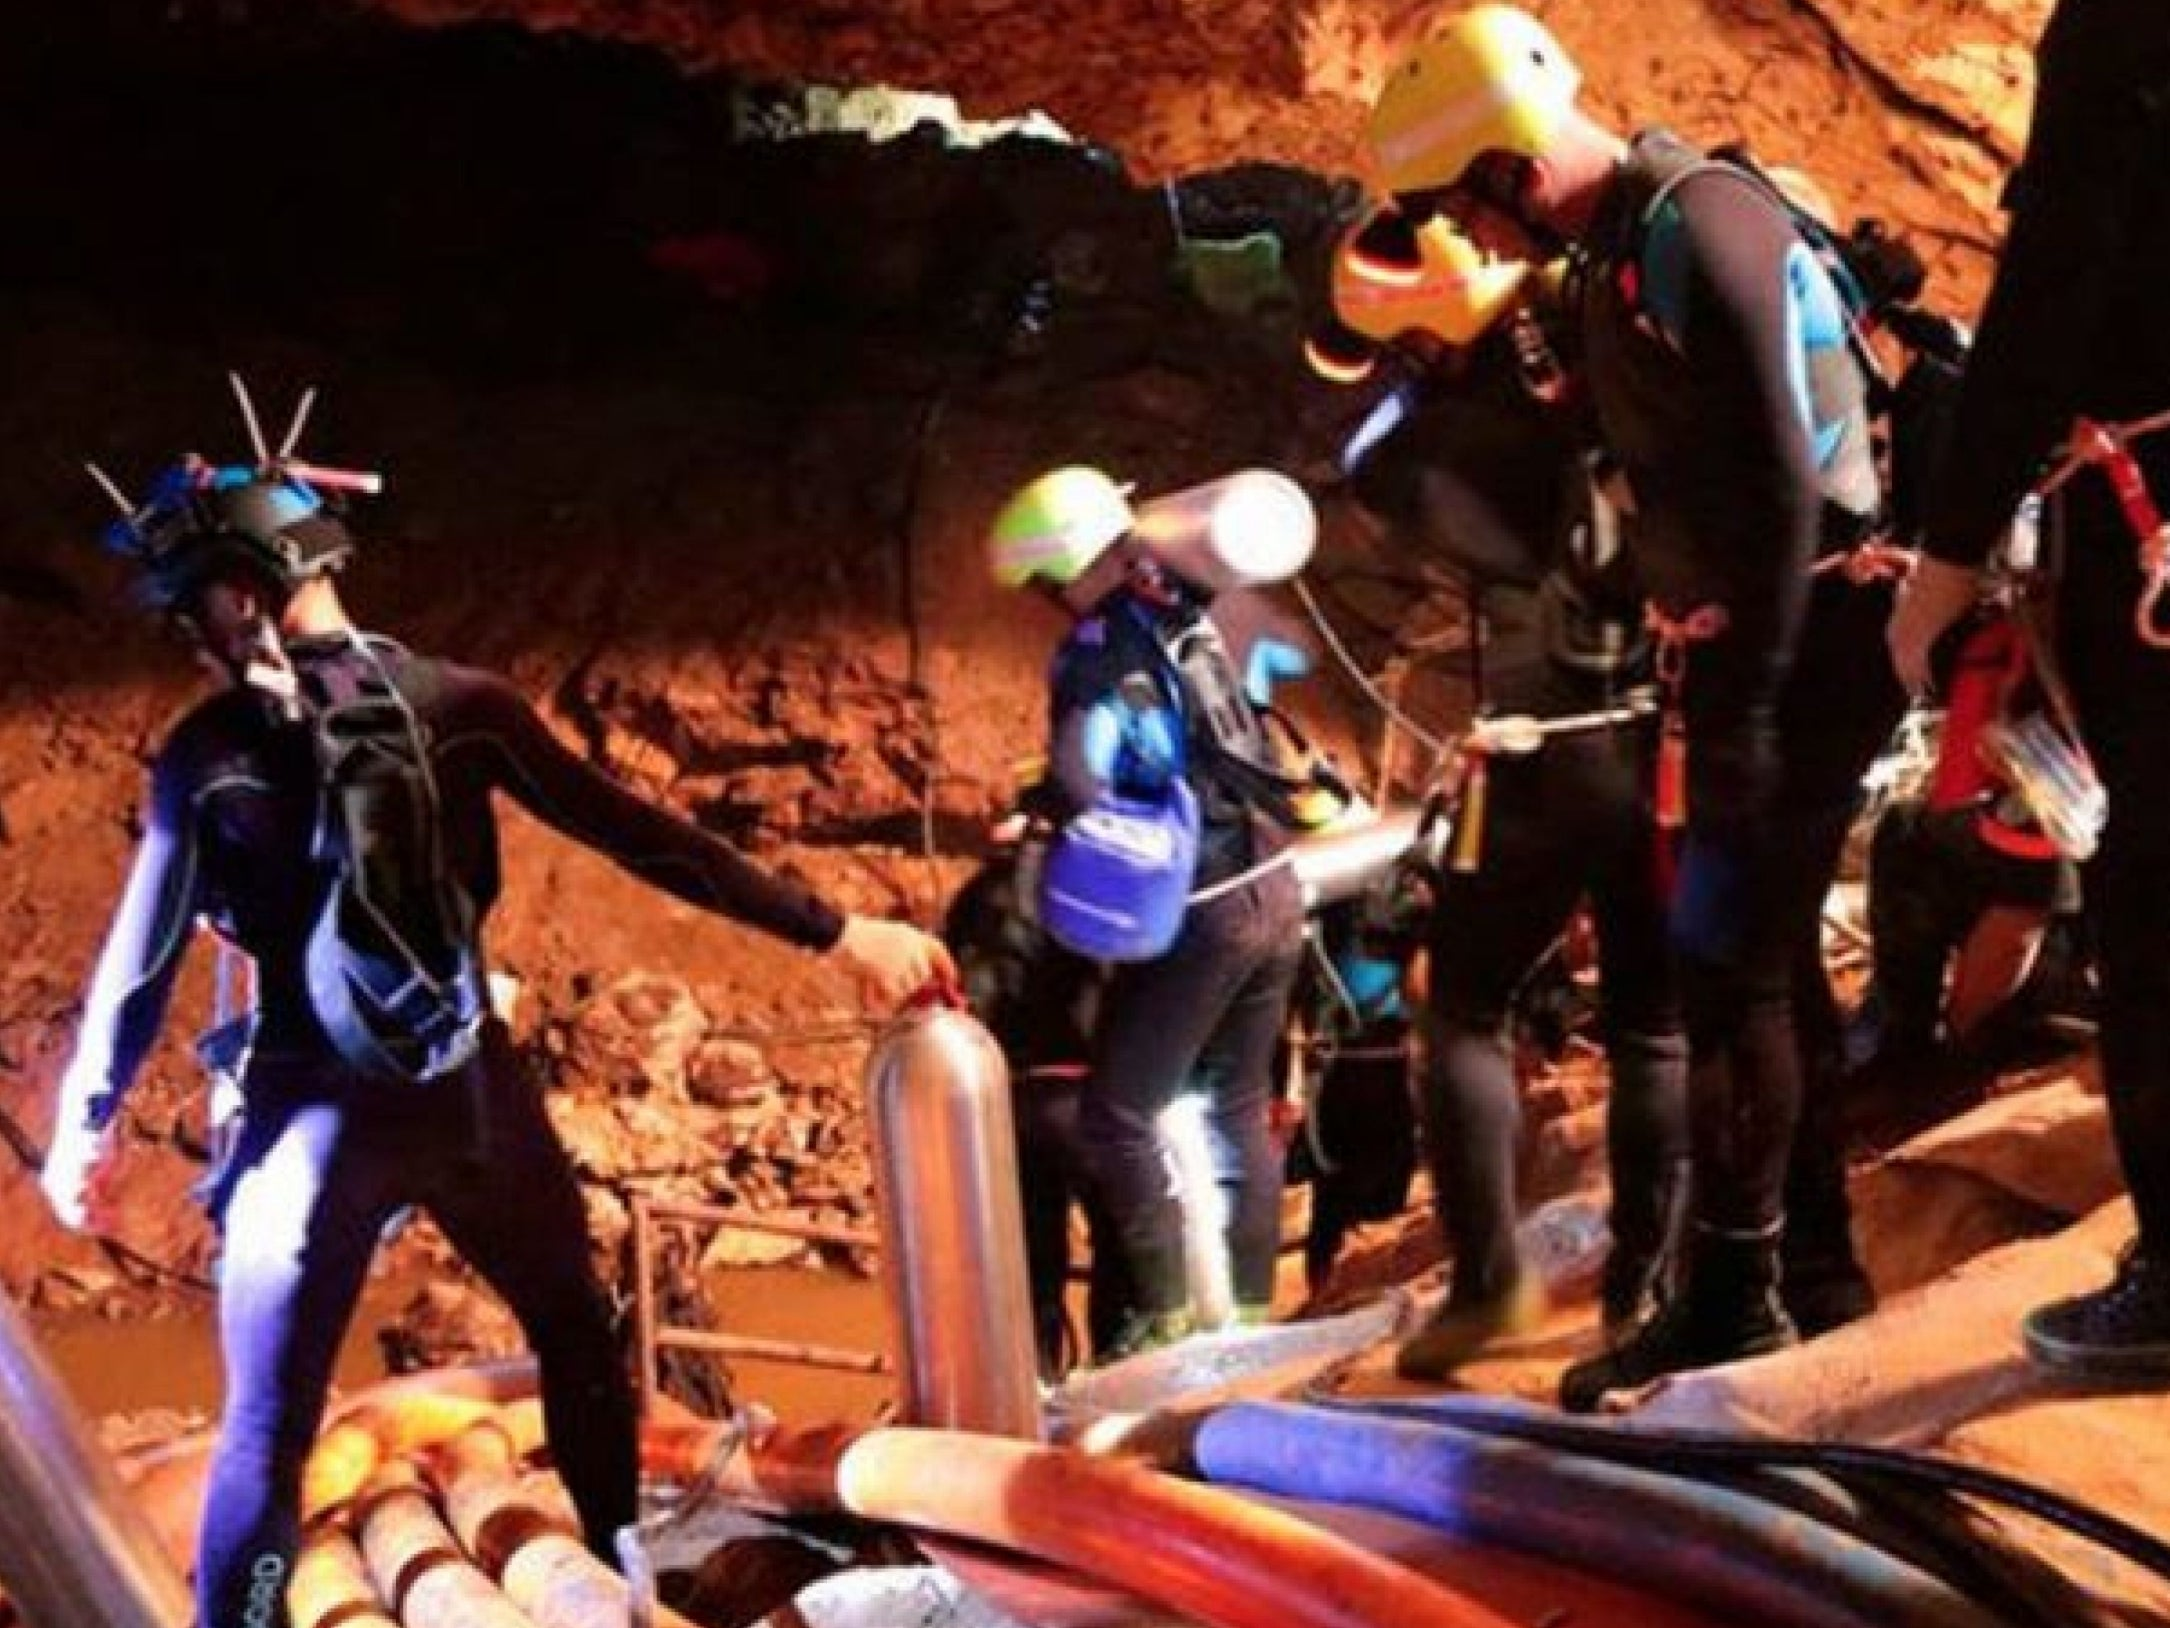 Elon Musk challenged Thai cave rescue hero to sue him if